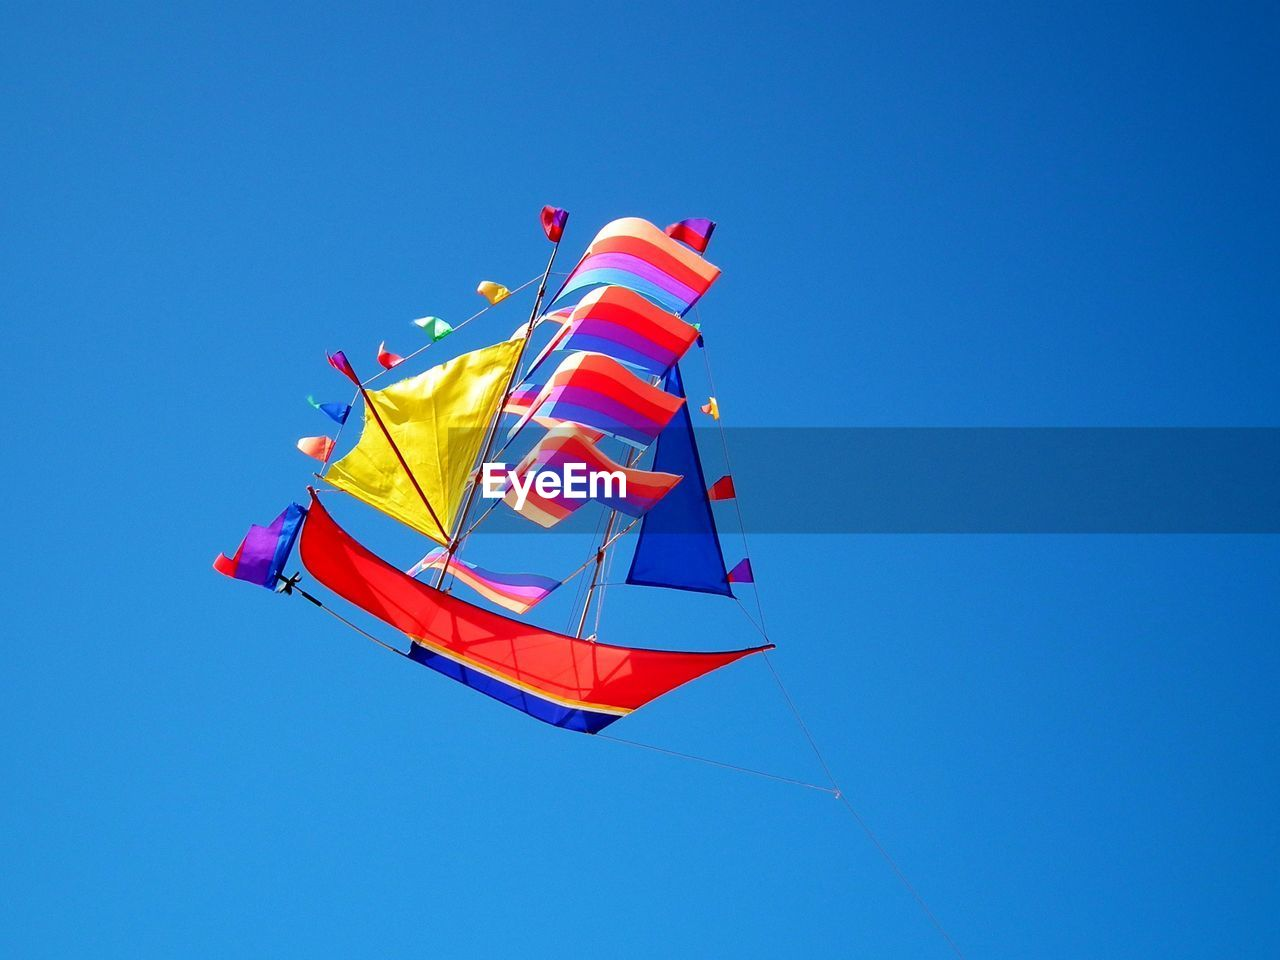 sky, blue, clear sky, low angle view, multi colored, wind, no people, nature, day, copy space, flying, flag, environment, patriotism, freedom, mid-air, red, kite - toy, striped, shape, outdoors, independence